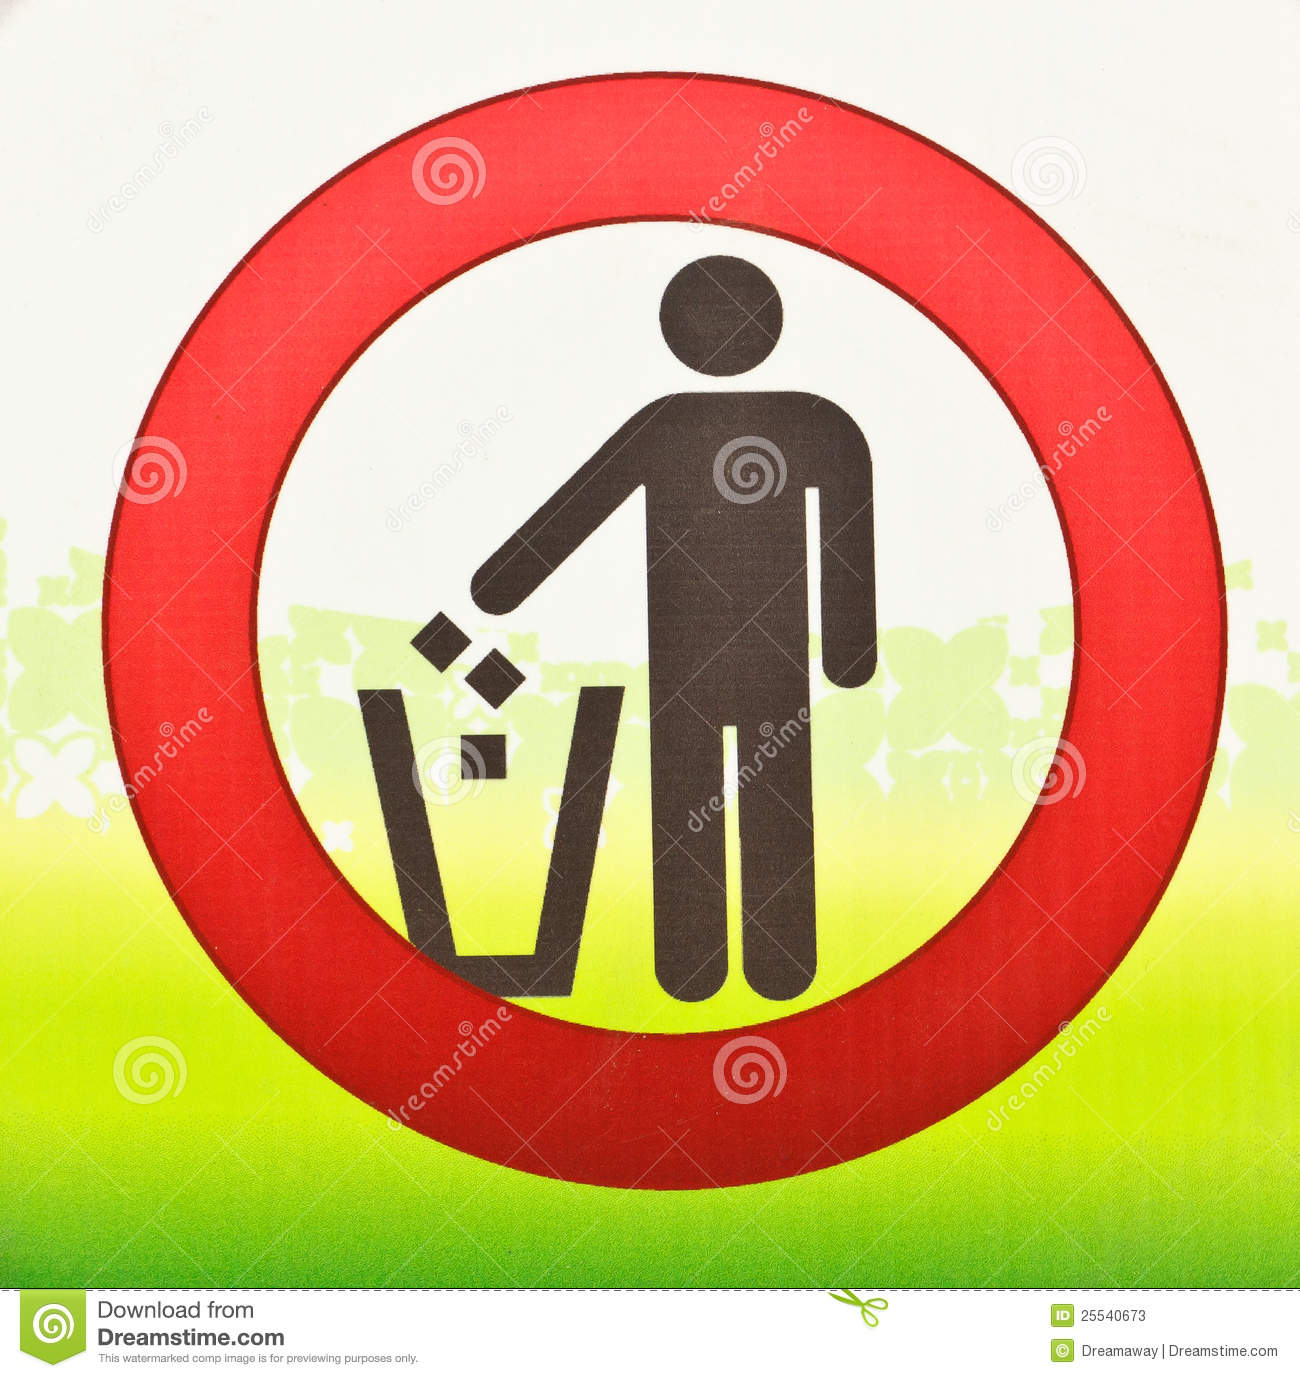 Keep Clean Stock Photos - Image: 25540673